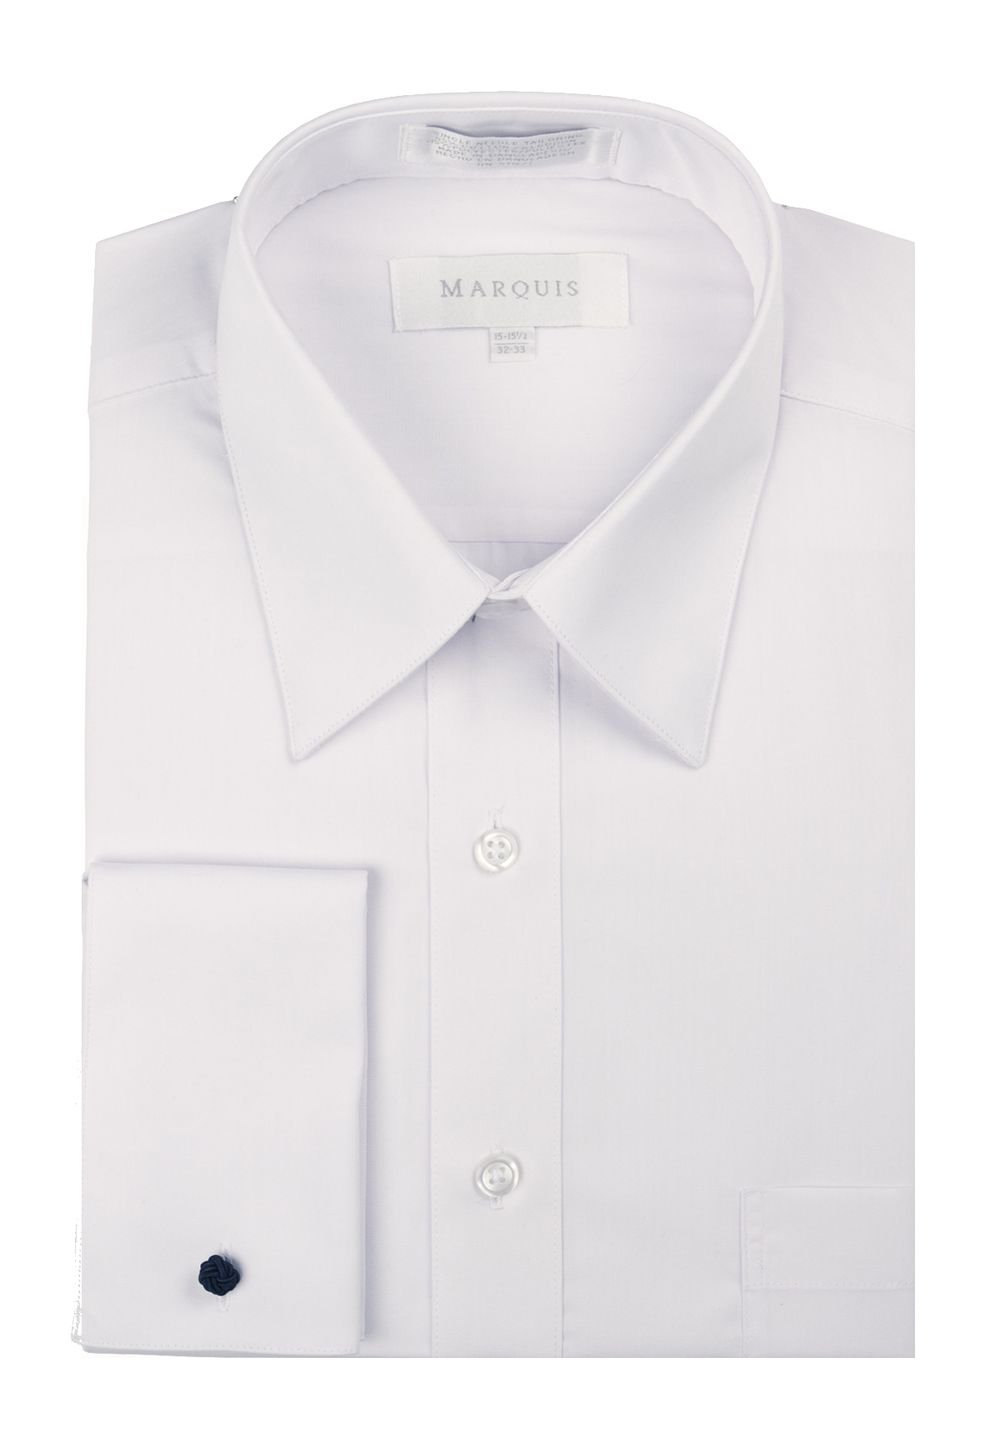 Marquis Mens White Pointed Collar French Cuff Dress Shirt 009f